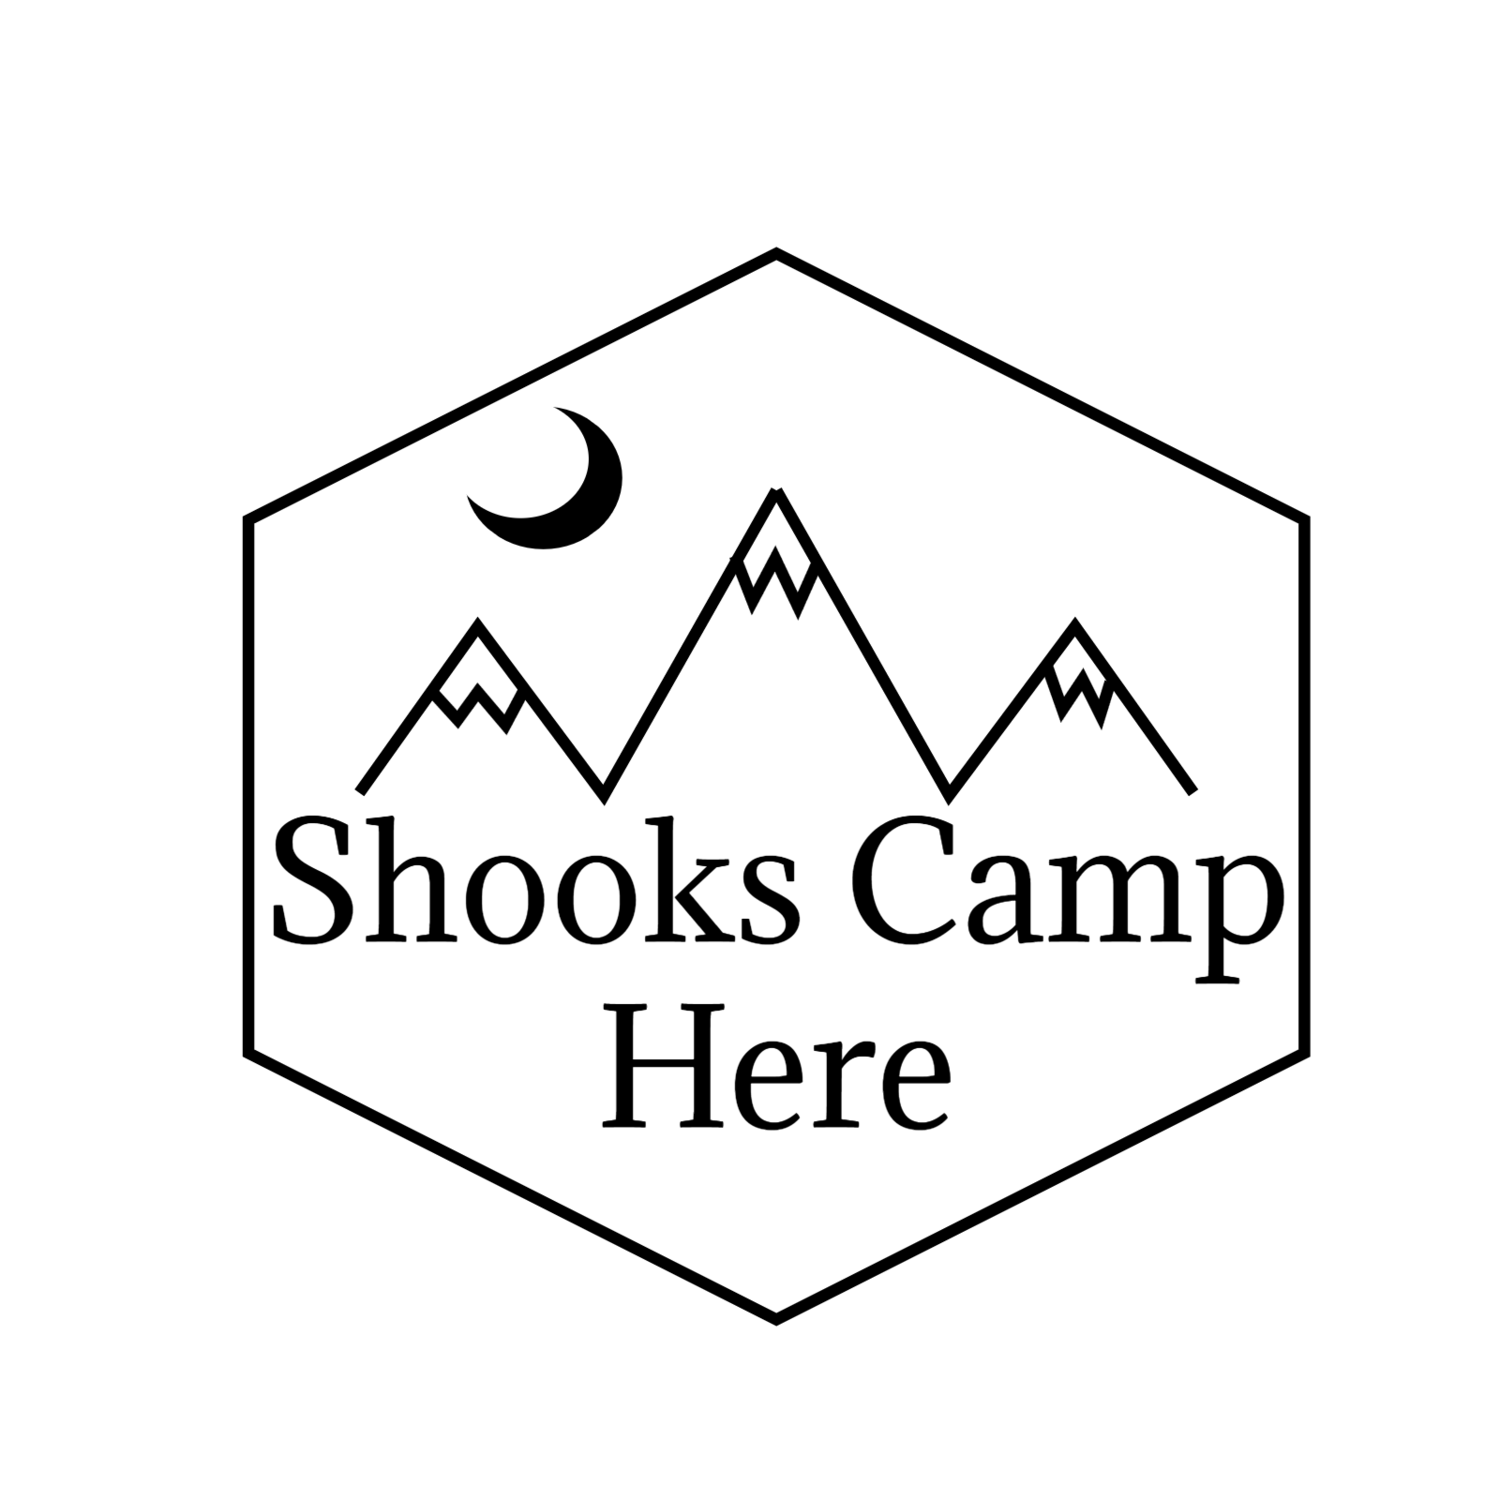 Shooks Camp Here